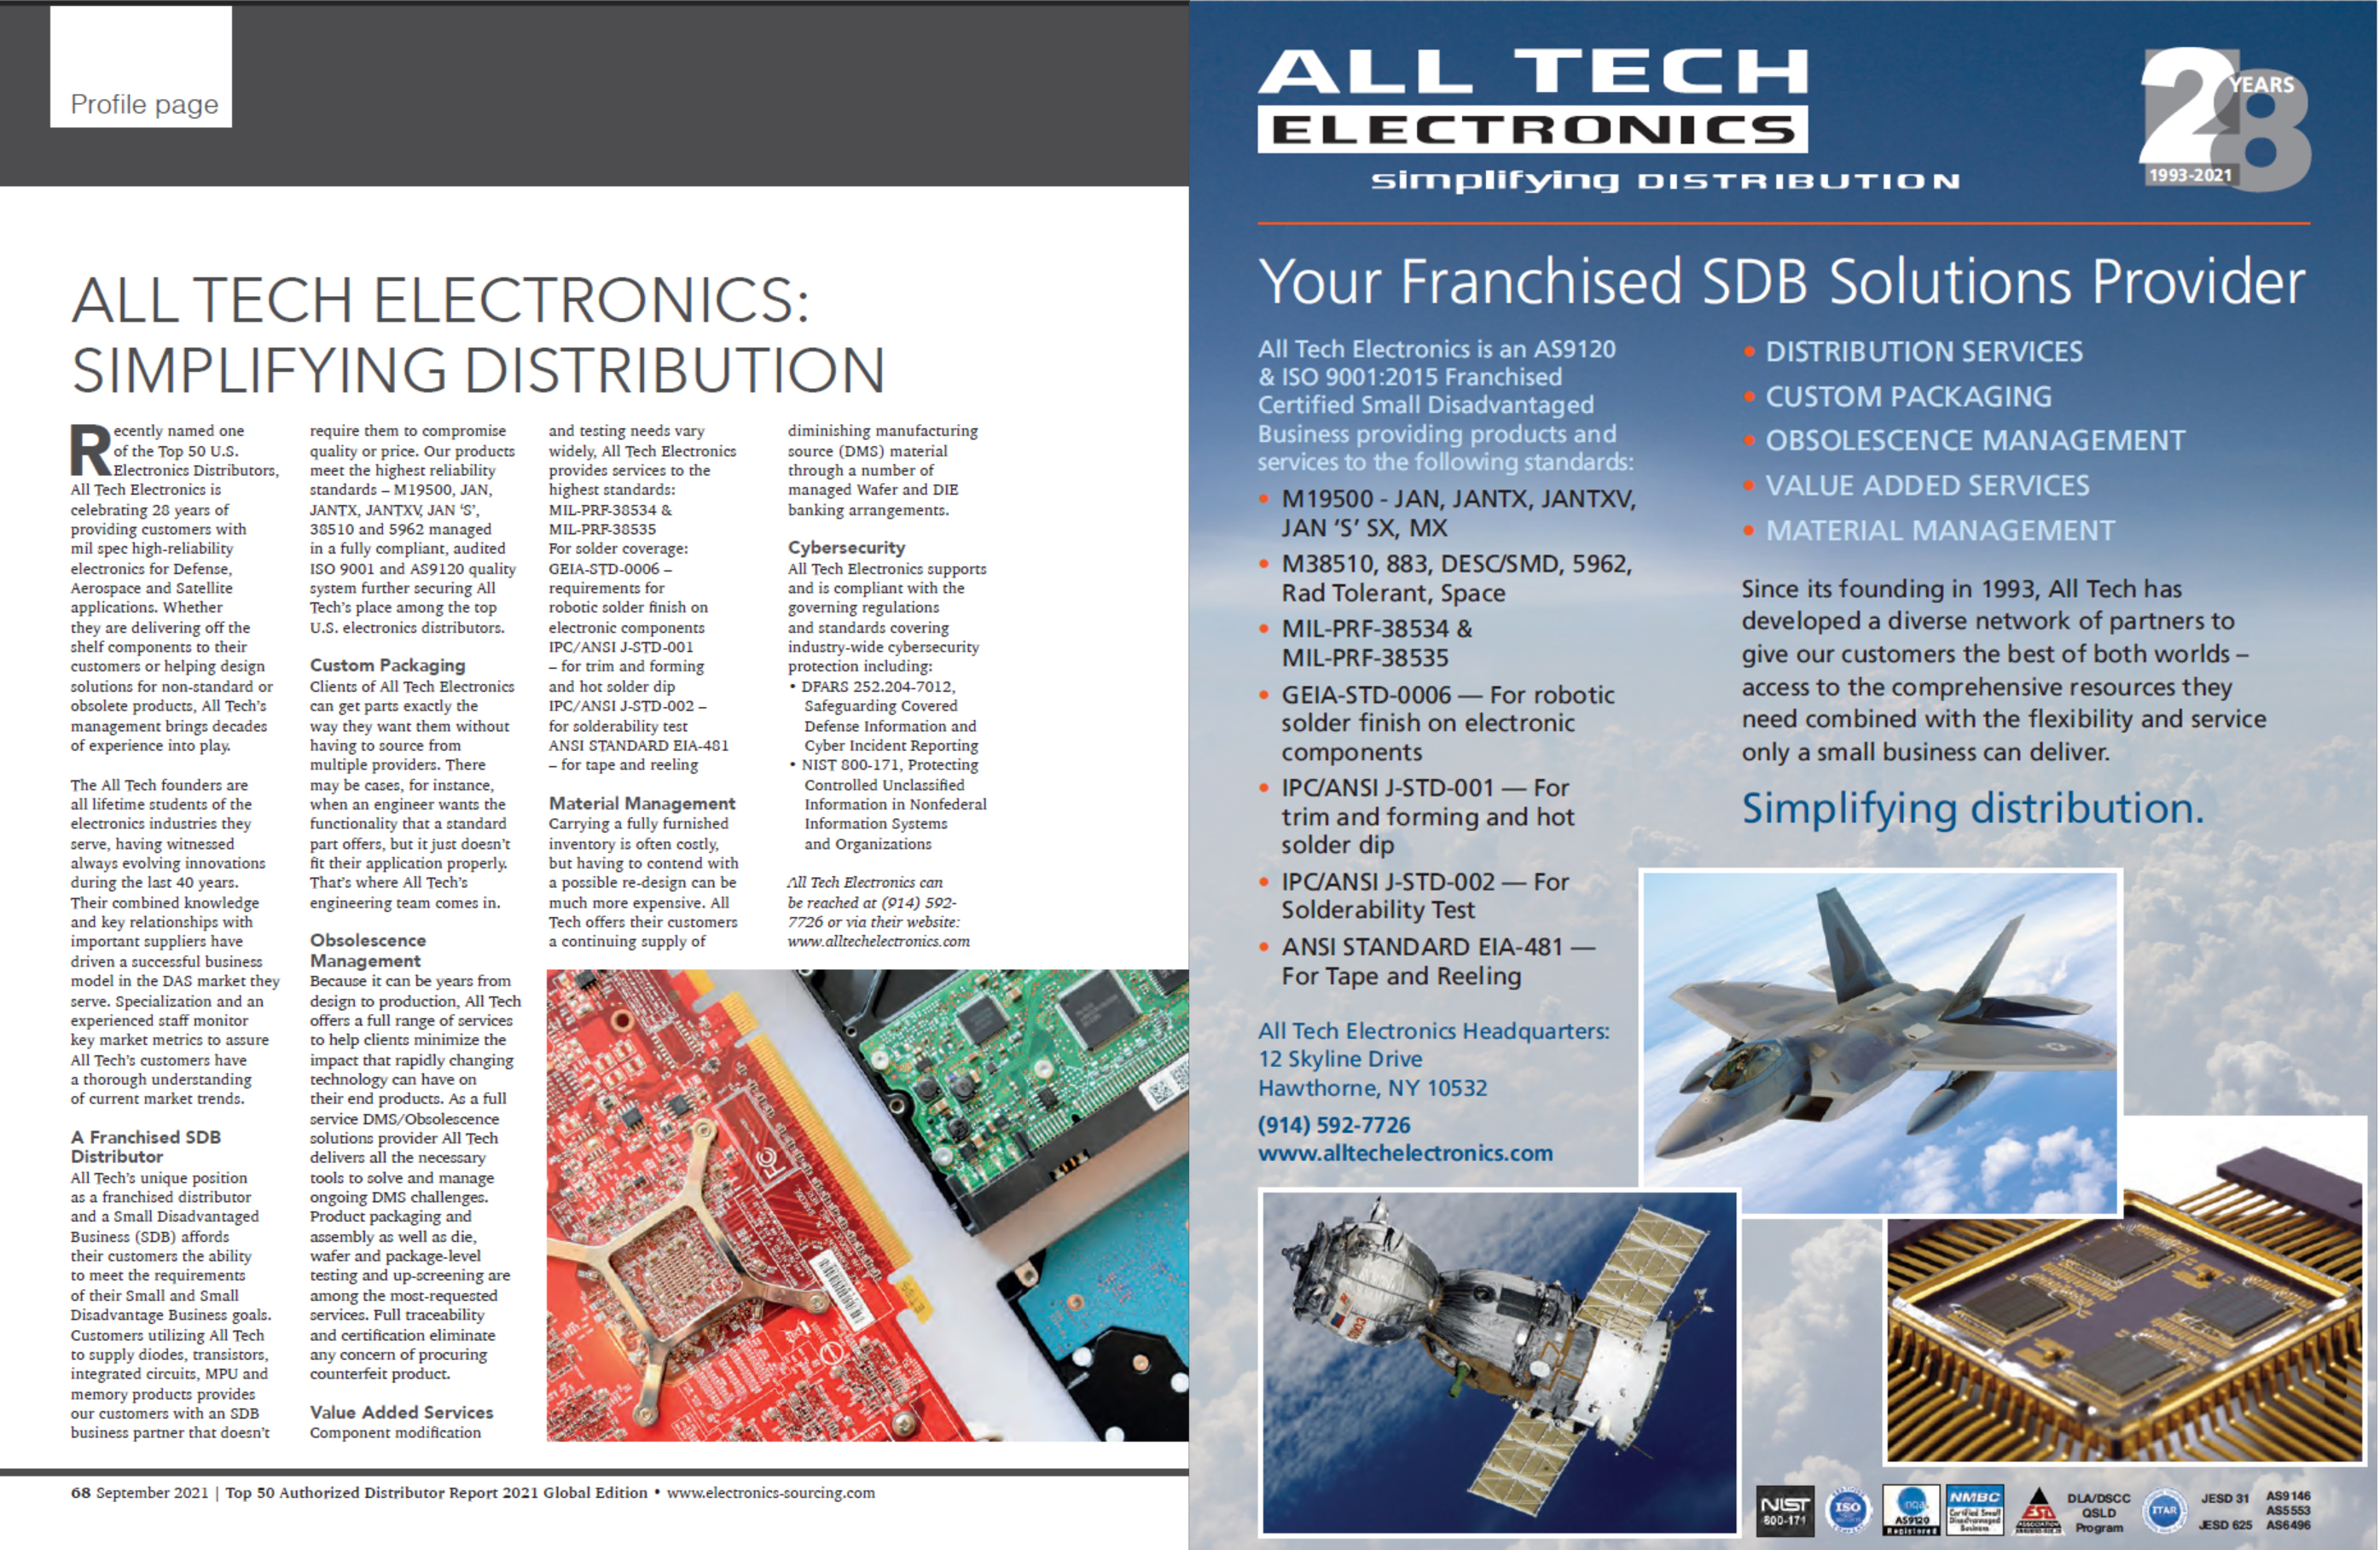 All Tech Electronics in Electronics Sourcing's Top 50 Distributors